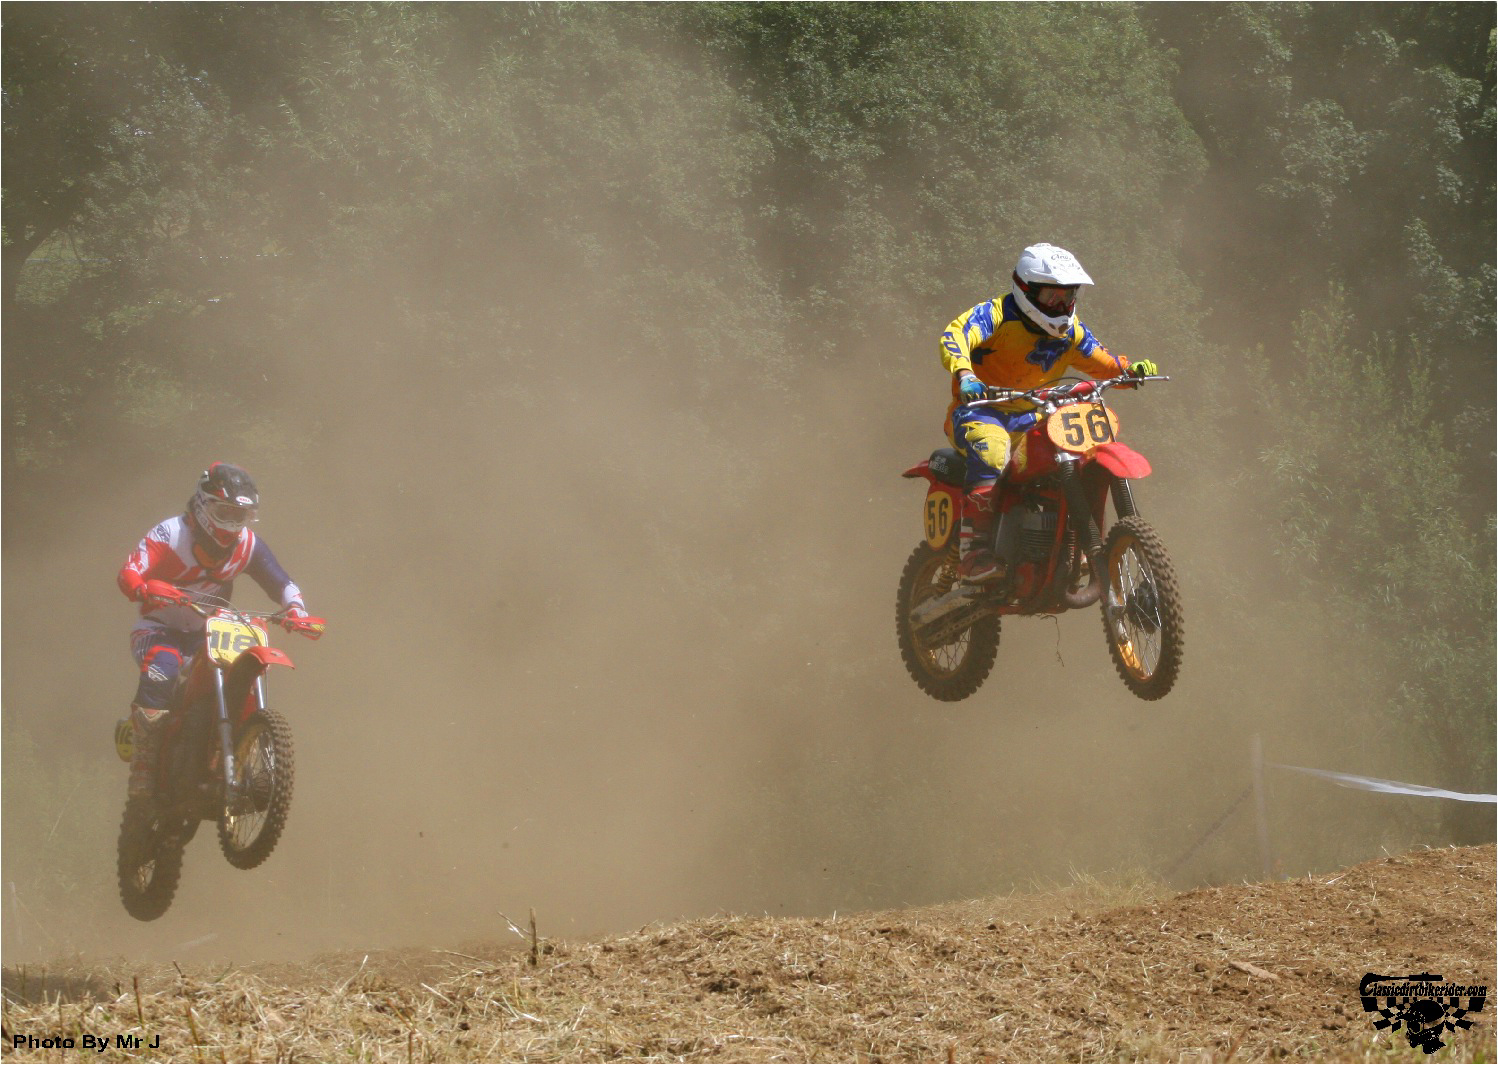 king of the castle 2015 photos Farleigh Castle twinshock motocross classicdirtbikerider.com 103